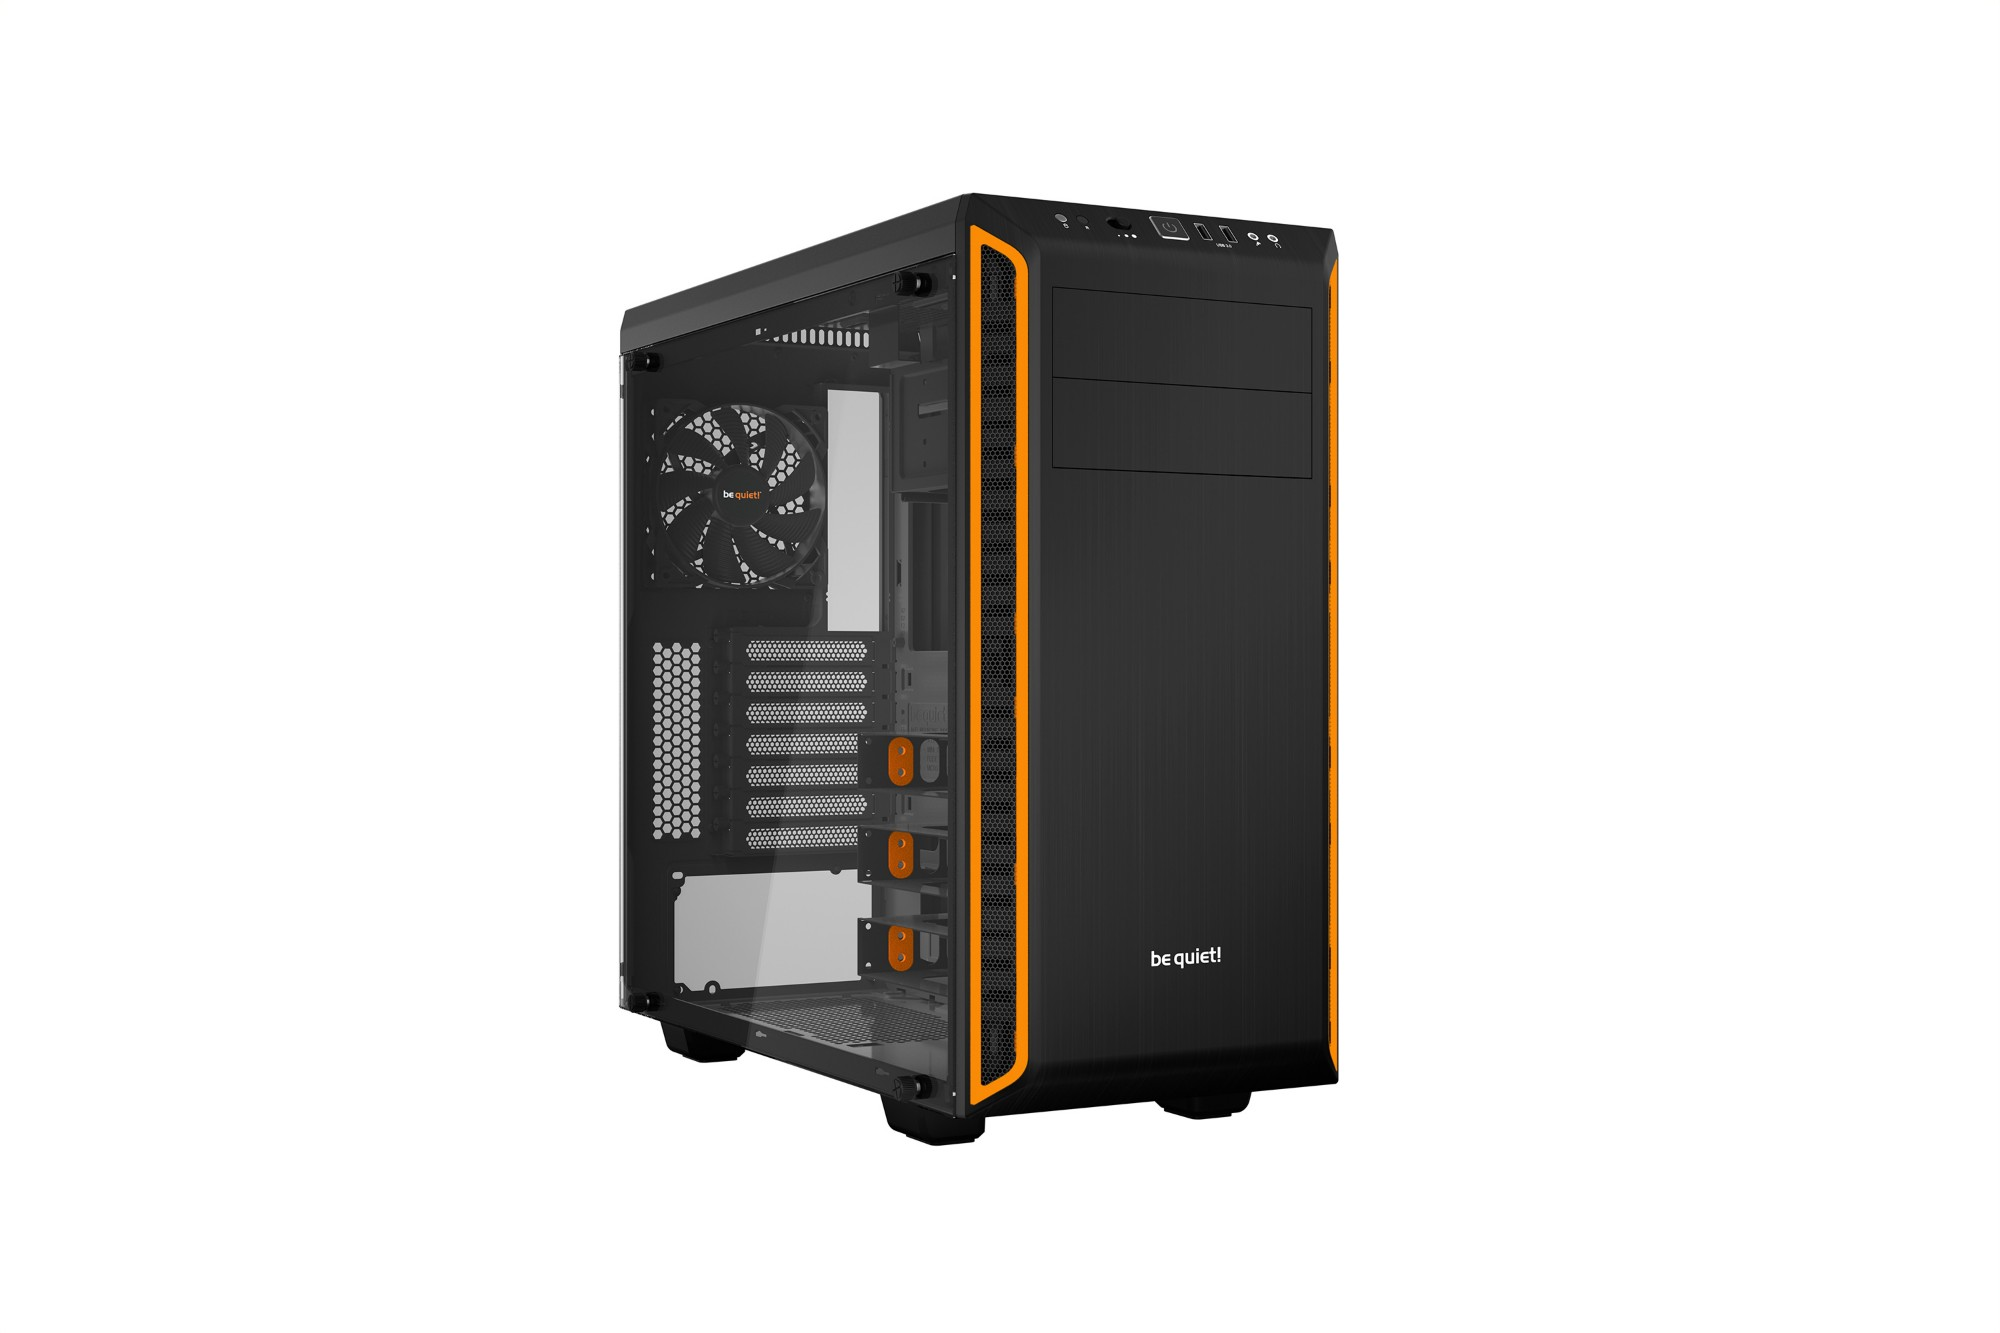 BE QUIET! PURE BASE 600 WINDOW - ATX, M-ATX, MINI-ITX, ABS PLASTIC/STEEL, 8.45KG